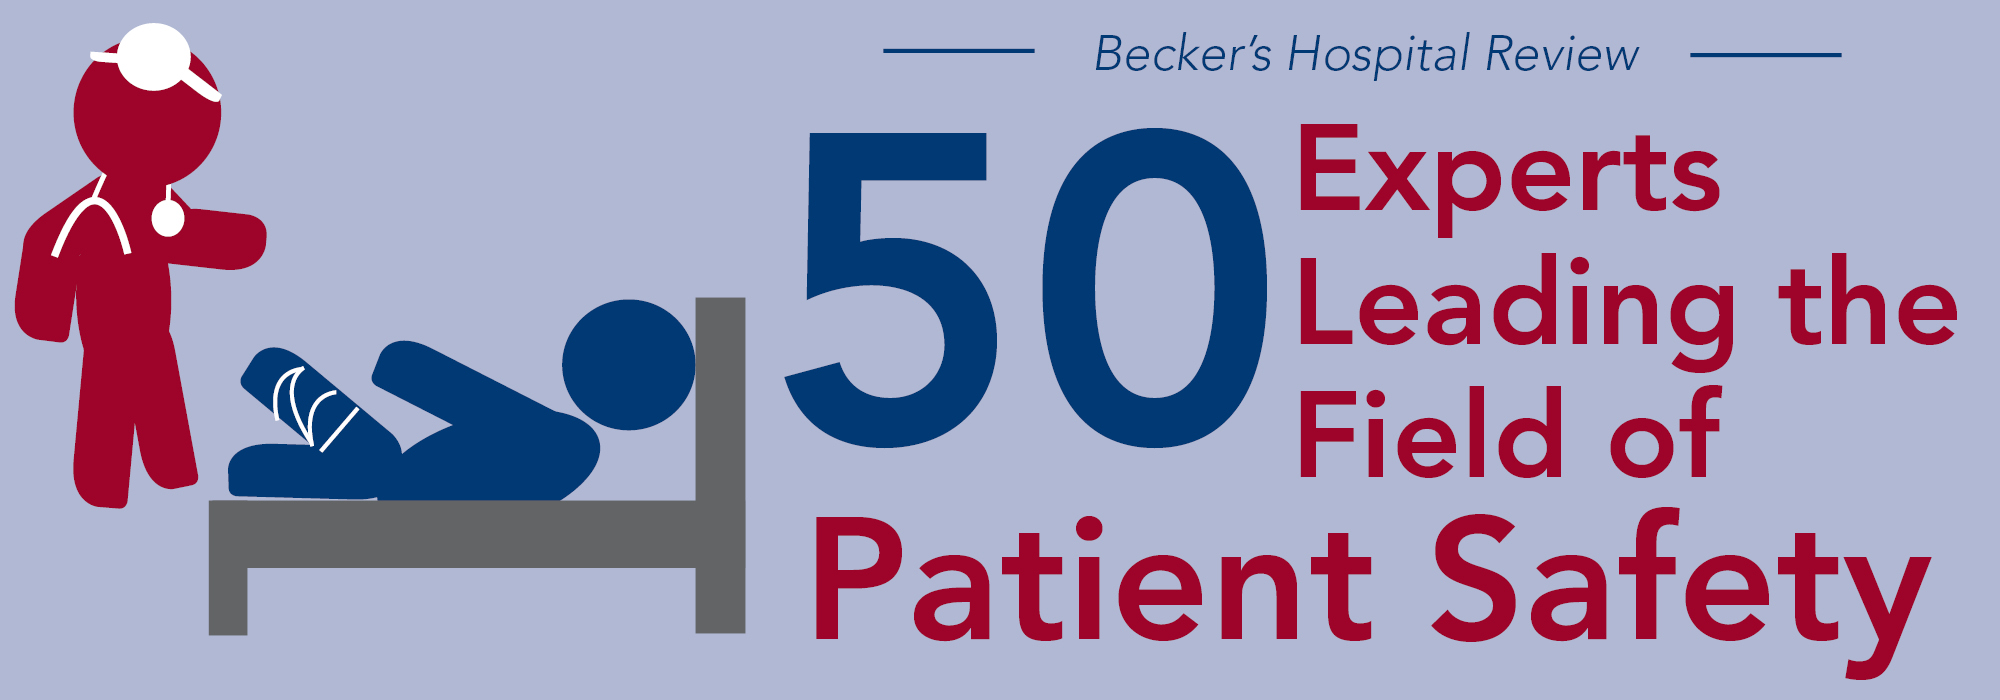 50 Experts Leading The Field Of Patient Safety 2017